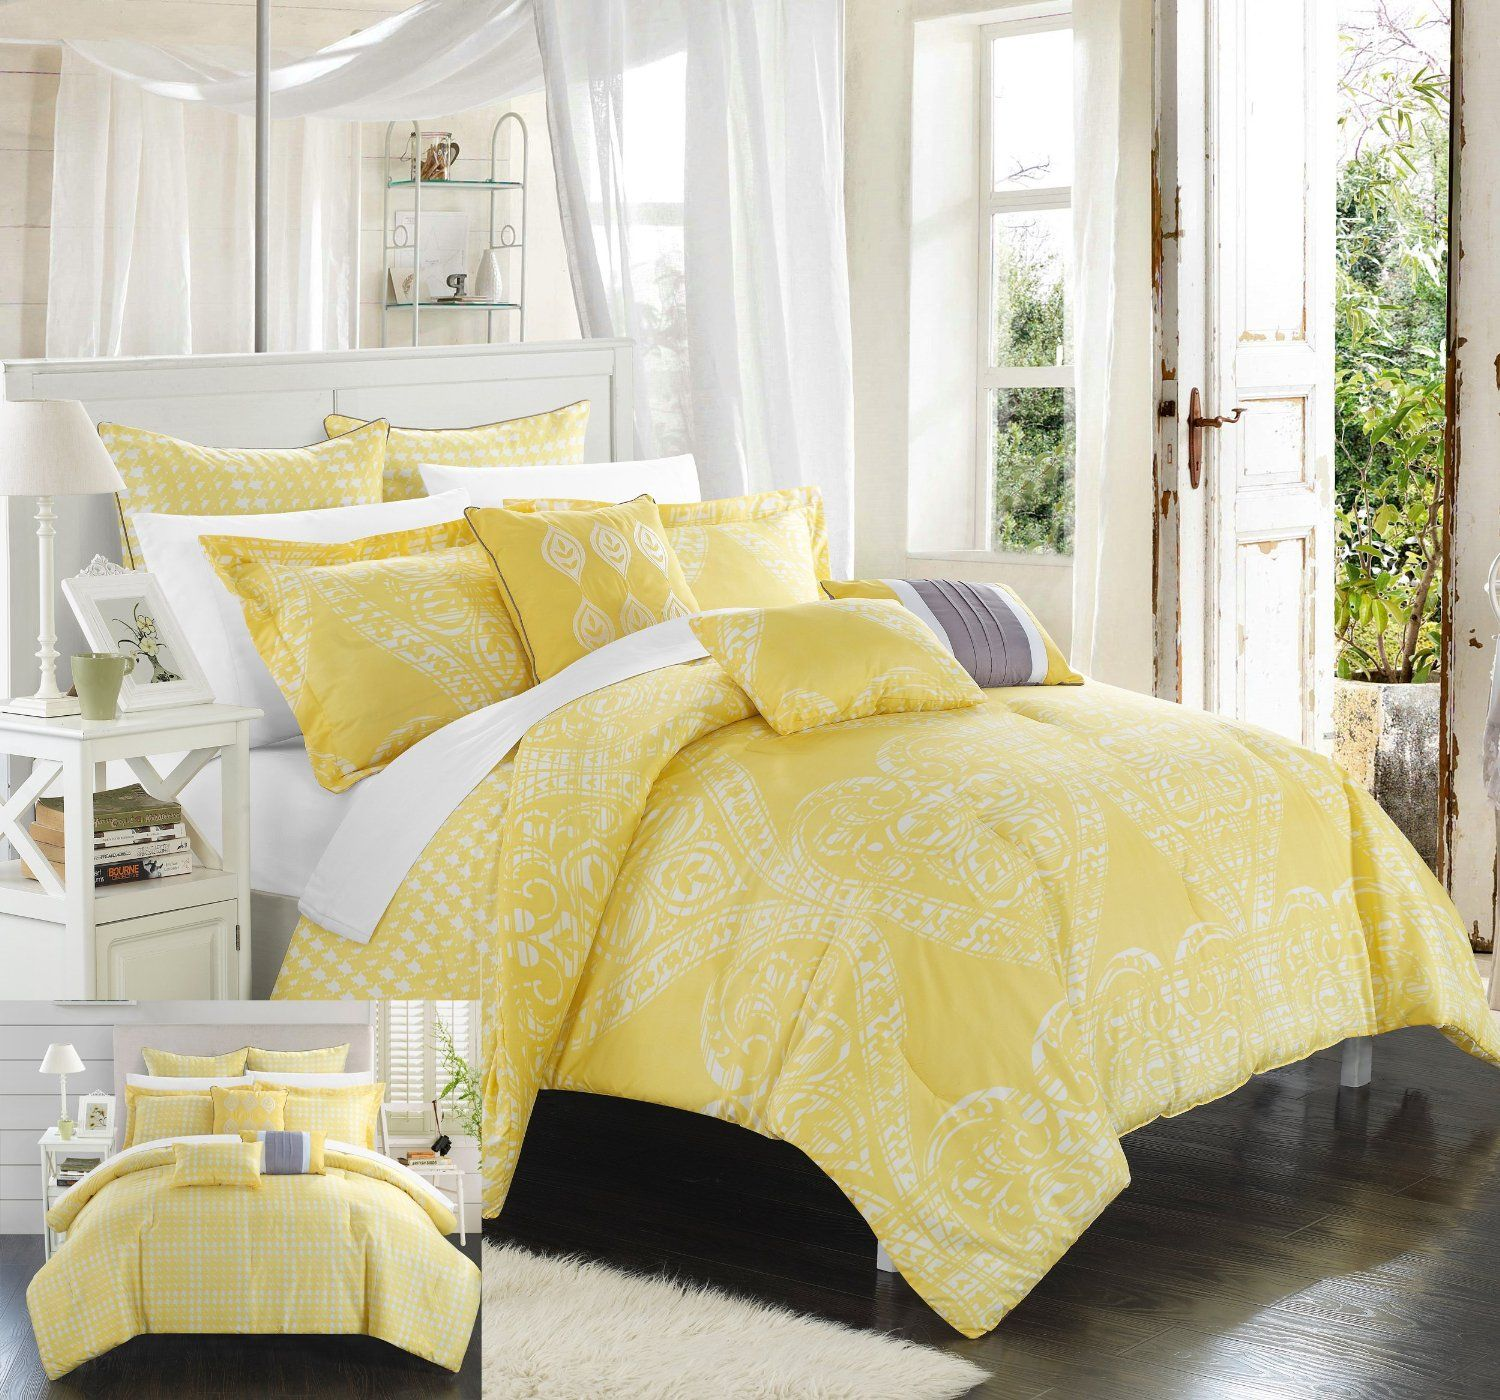 queen com scroll teen of black cover ideas cute white best full yellow girl twin theamphletts dot duvet elegant bedding and